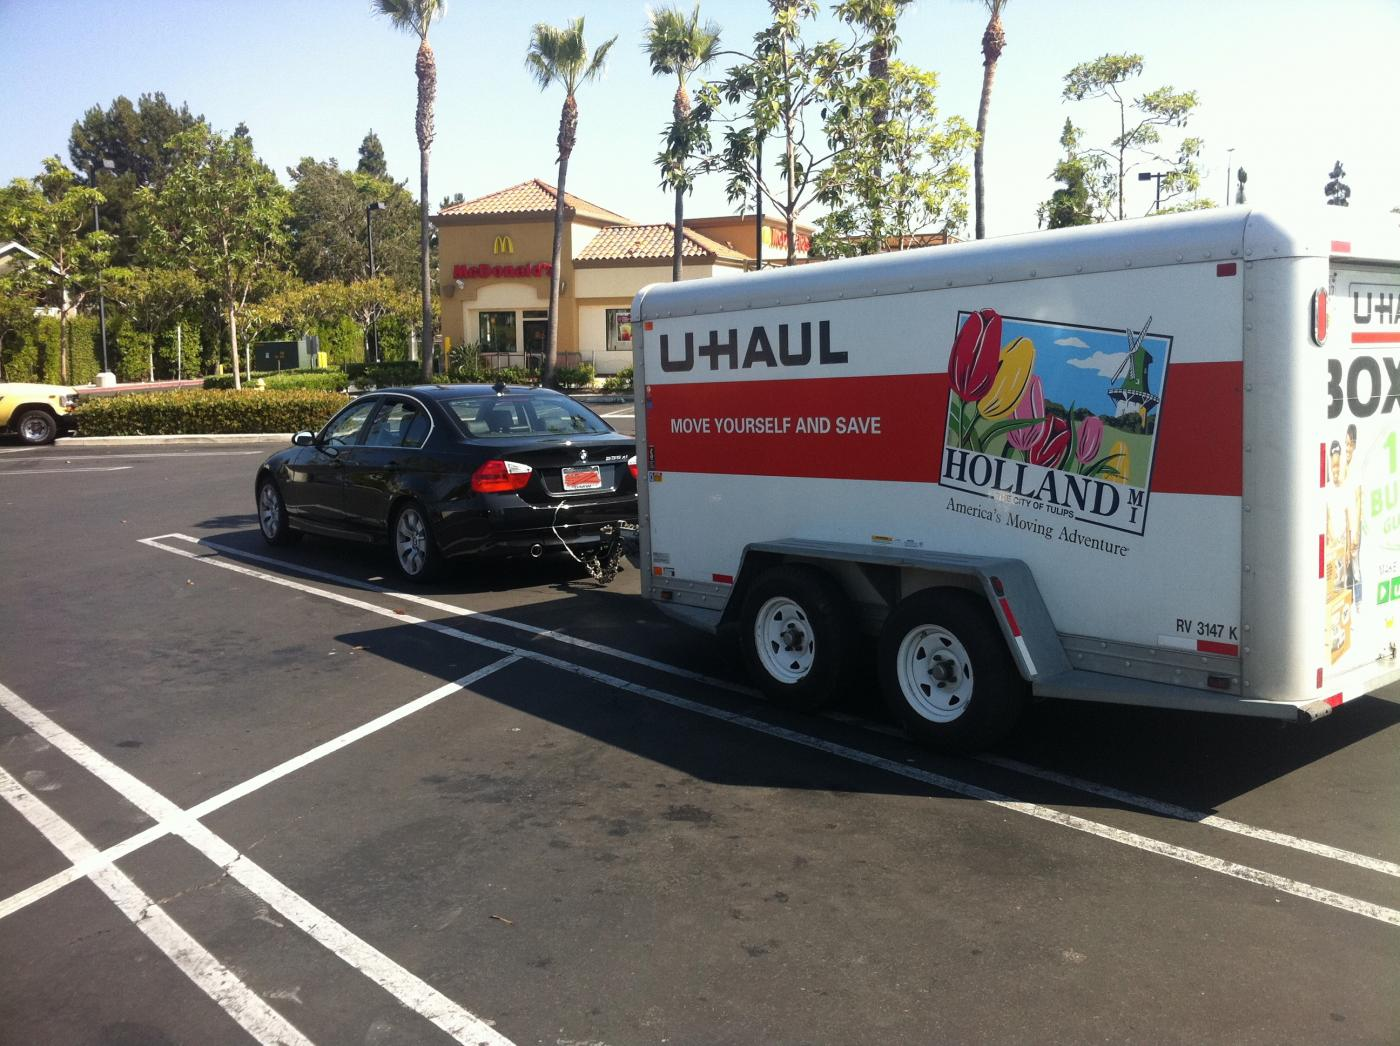 How Much To Rent A Car Trailer From Uhaul